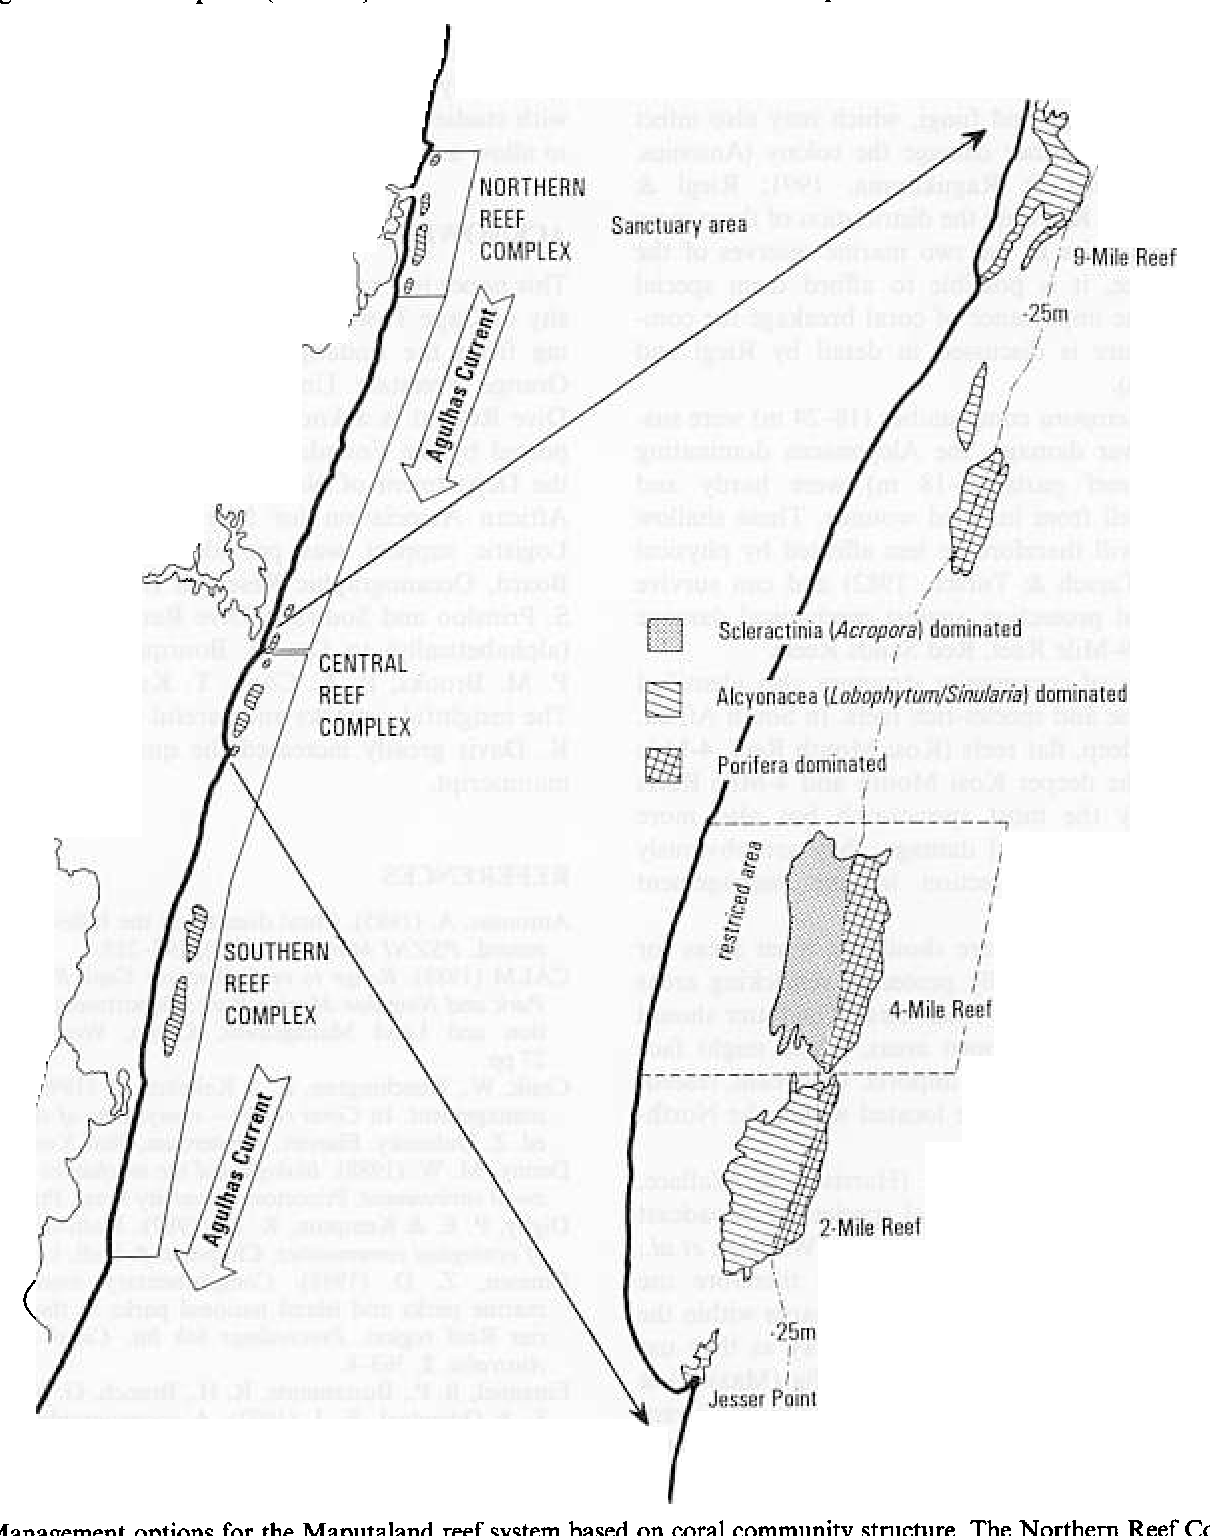 figure 9 from studies on coral munity semantic scholar Exodus Tabernacle Diagram fig 9 management options for the maputaland reef system based on coral munity structure